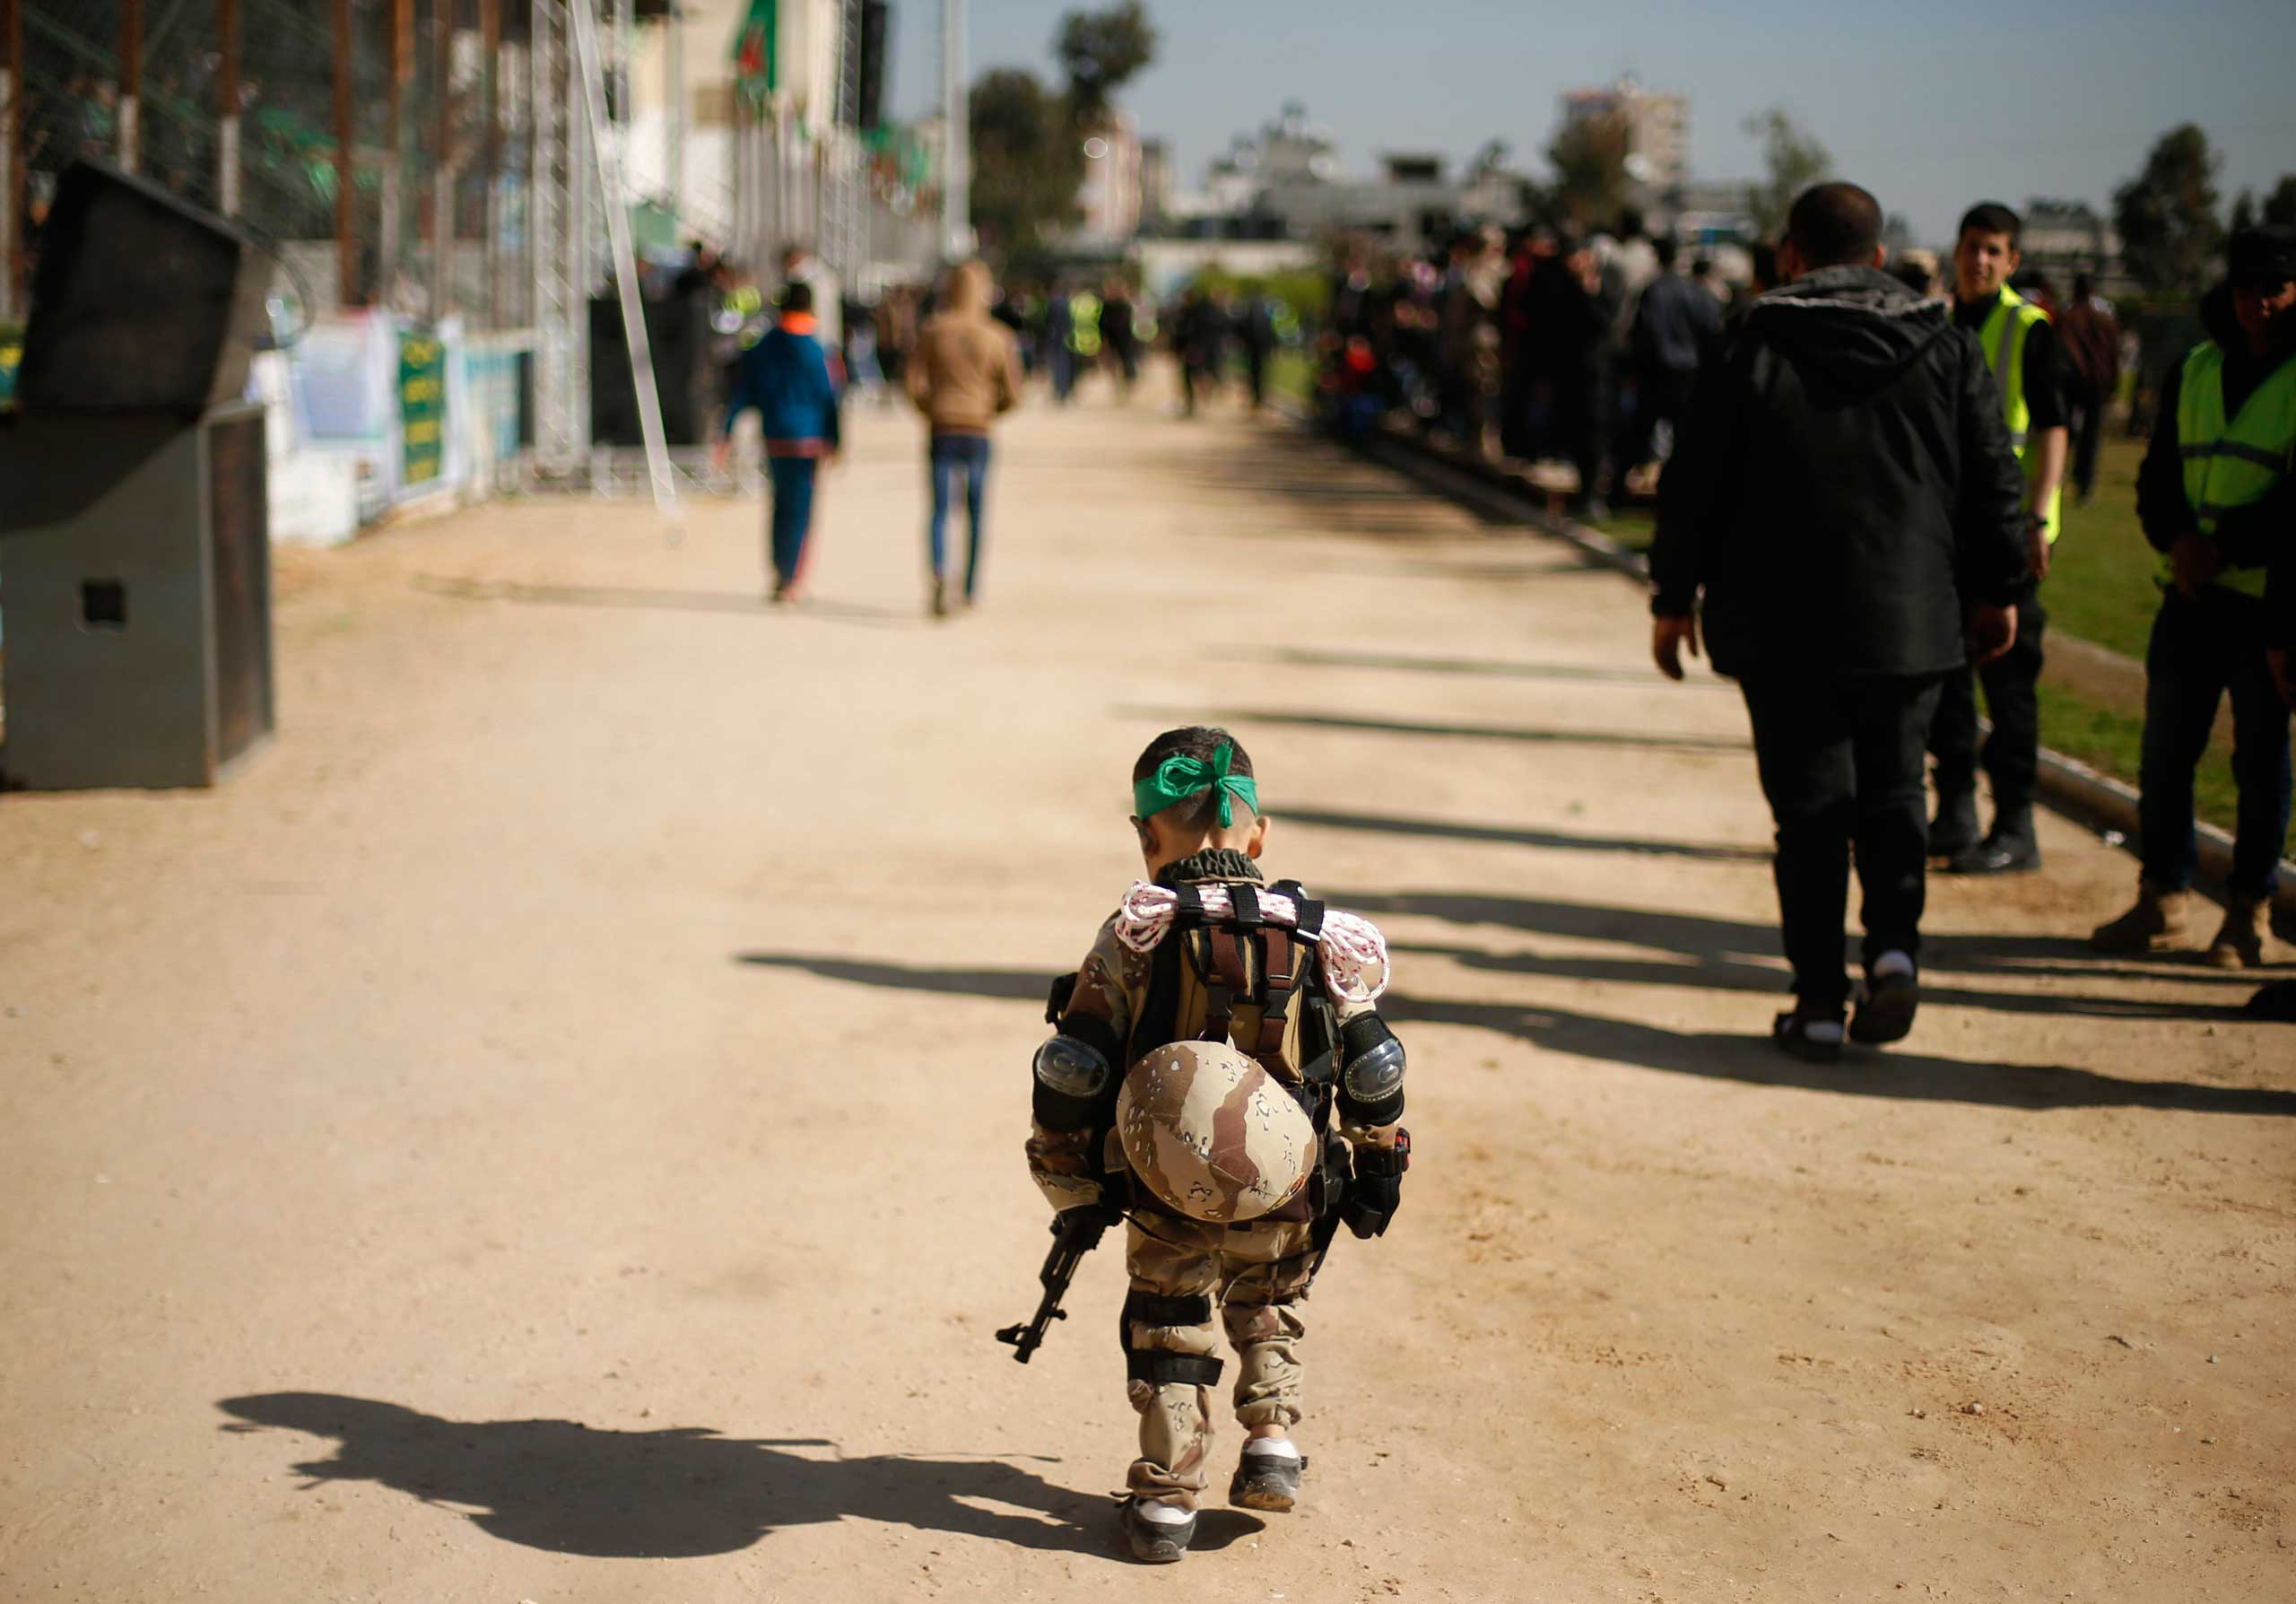 Jan. 29, 2015. A Palestinian boy wearing a military costume arrives at a military-style graduation ceremony for Palestinian youths who were trained at one of the Hamas-run liberation camps in Gaza. Some 17,000 youths graduated from these camps that aim to prepare them to confront Israeli attacks.